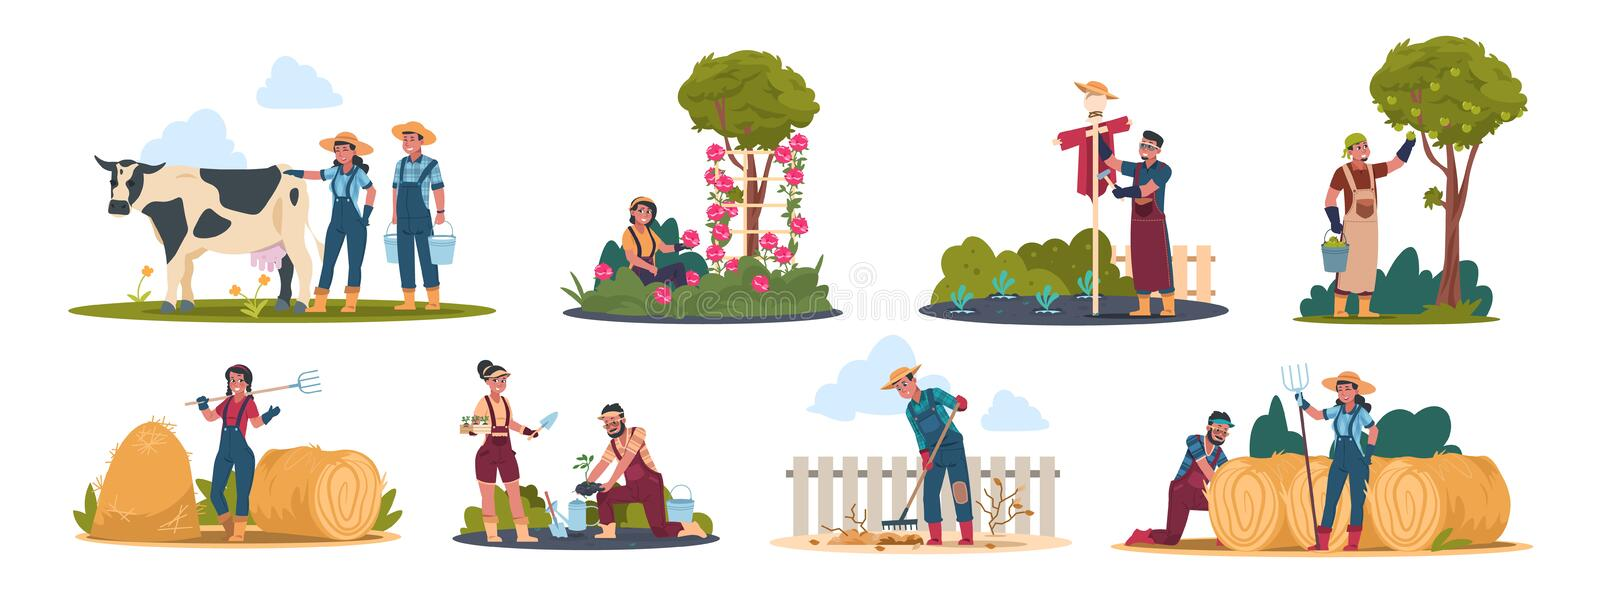 Agricultural workers. Harvesting people on field and in garden, cartoon characters doing farming job. Vector organic royalty free illustration